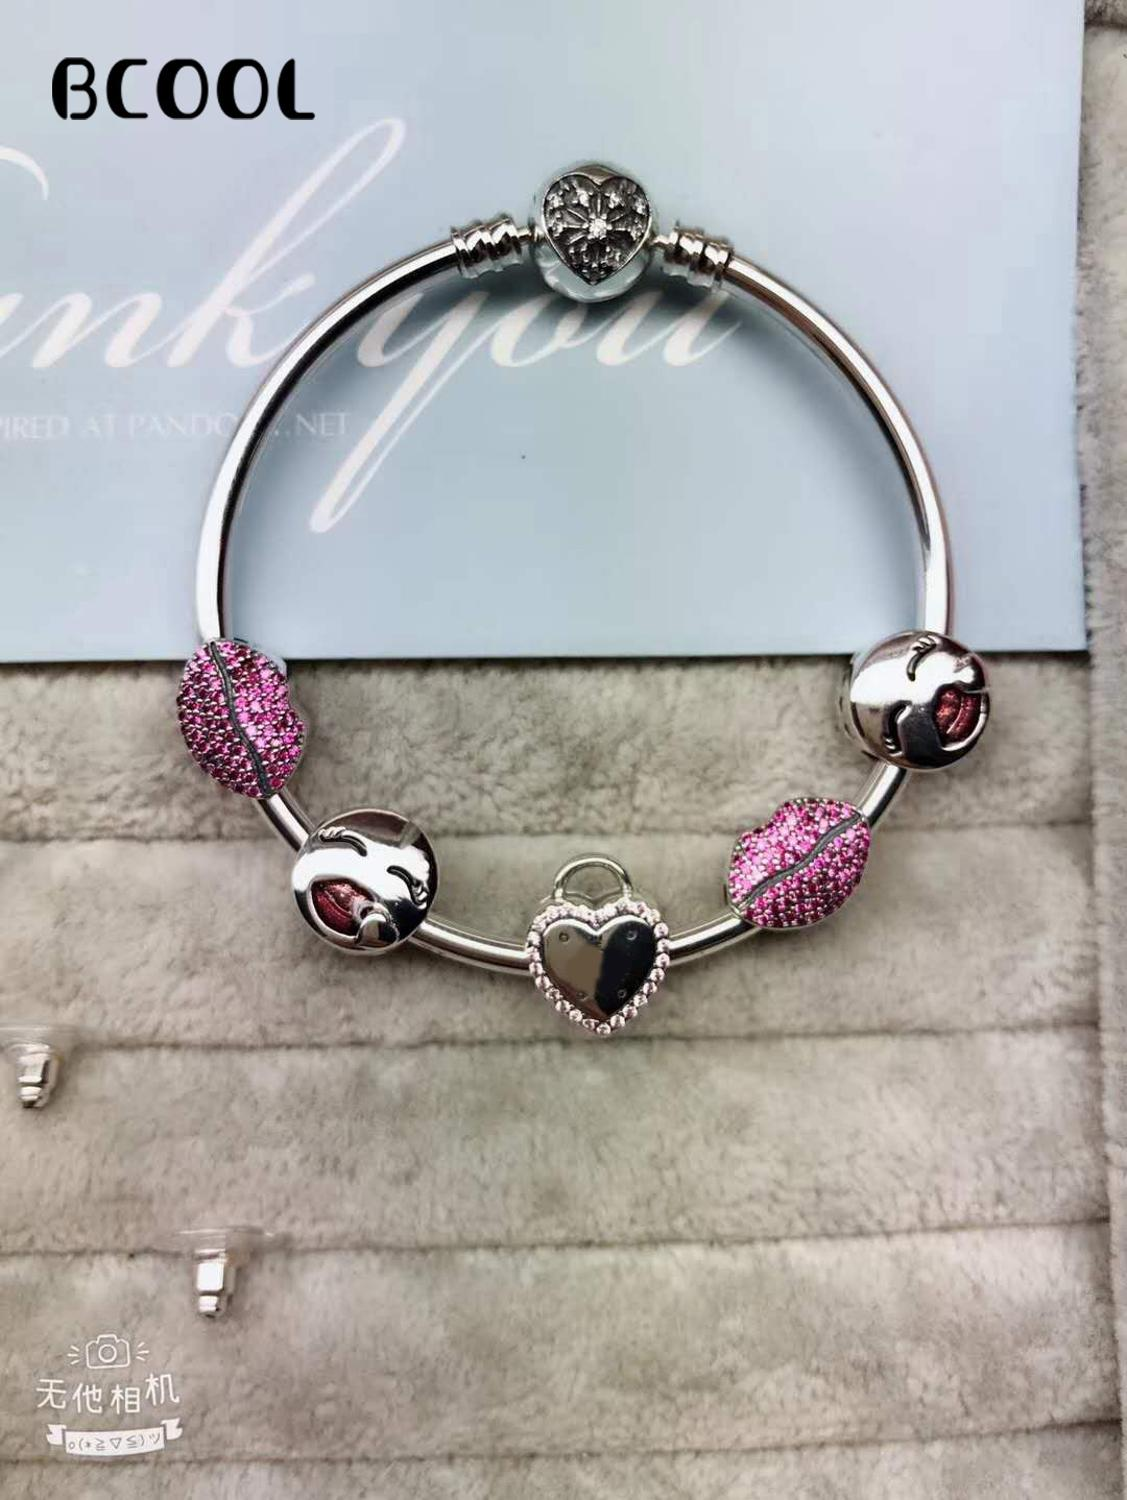 925 Sterling Silver Original 1:1, Fashionable Silver Charm Bracelet, Suitable For Womens Simple Crystal Beads Bracelet Jewelry925 Sterling Silver Original 1:1, Fashionable Silver Charm Bracelet, Suitable For Womens Simple Crystal Beads Bracelet Jewelry